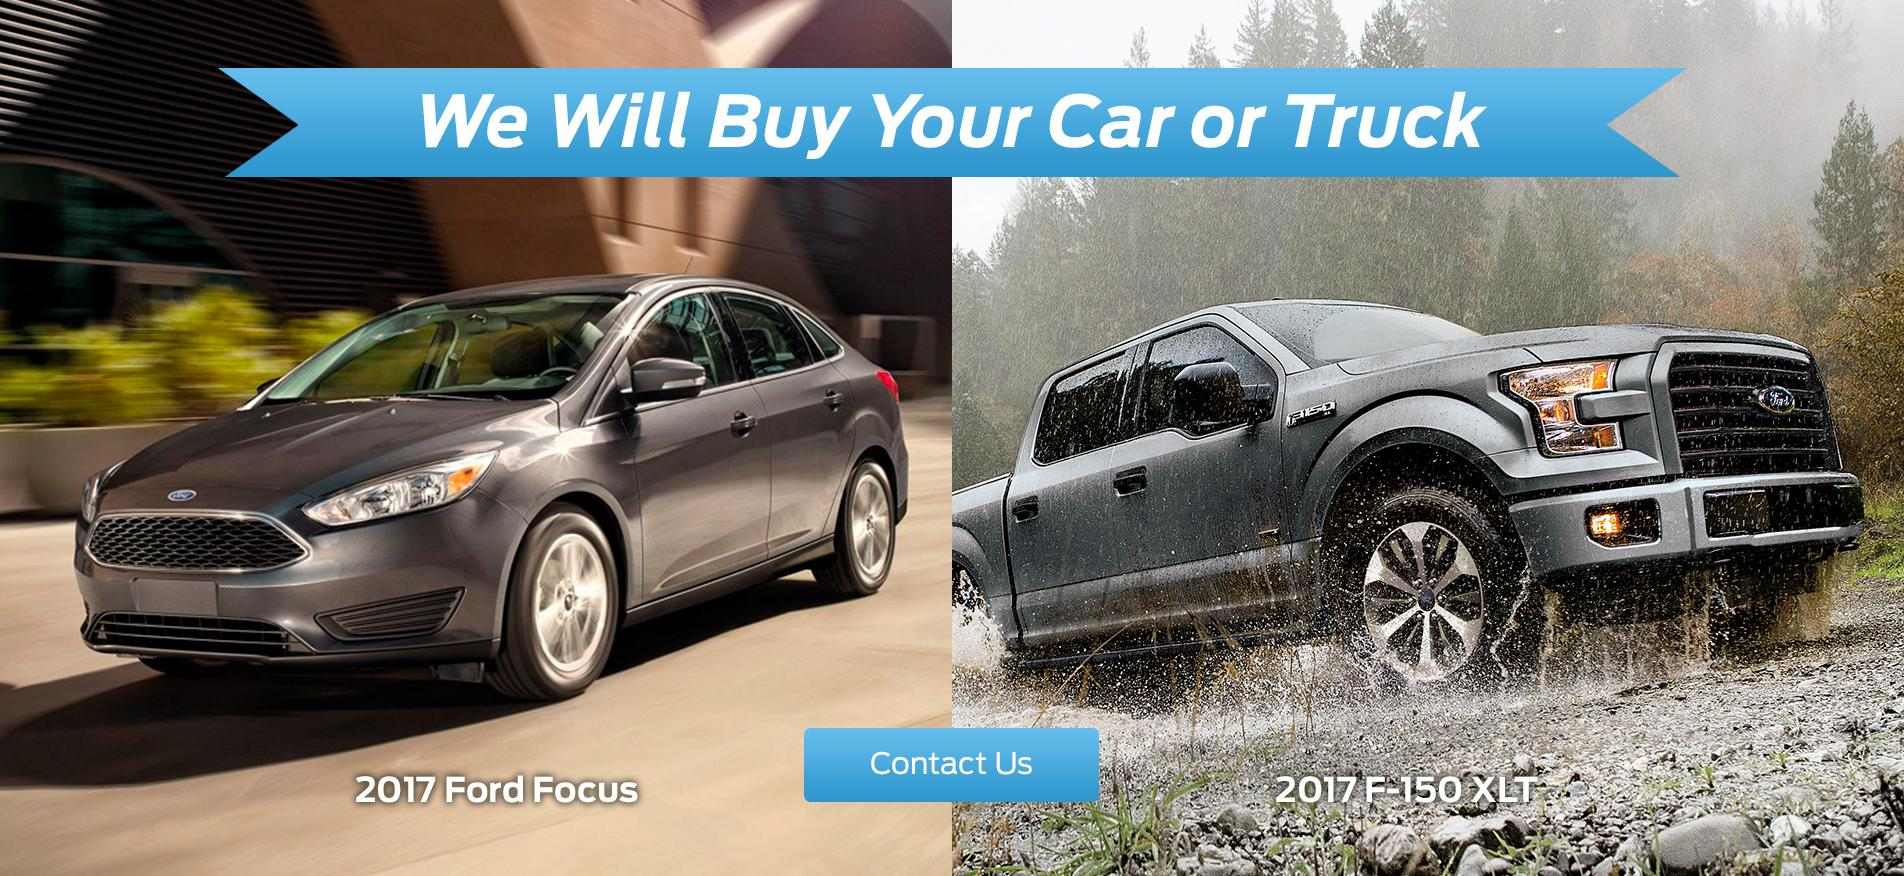 We Buy Your Car or Truck